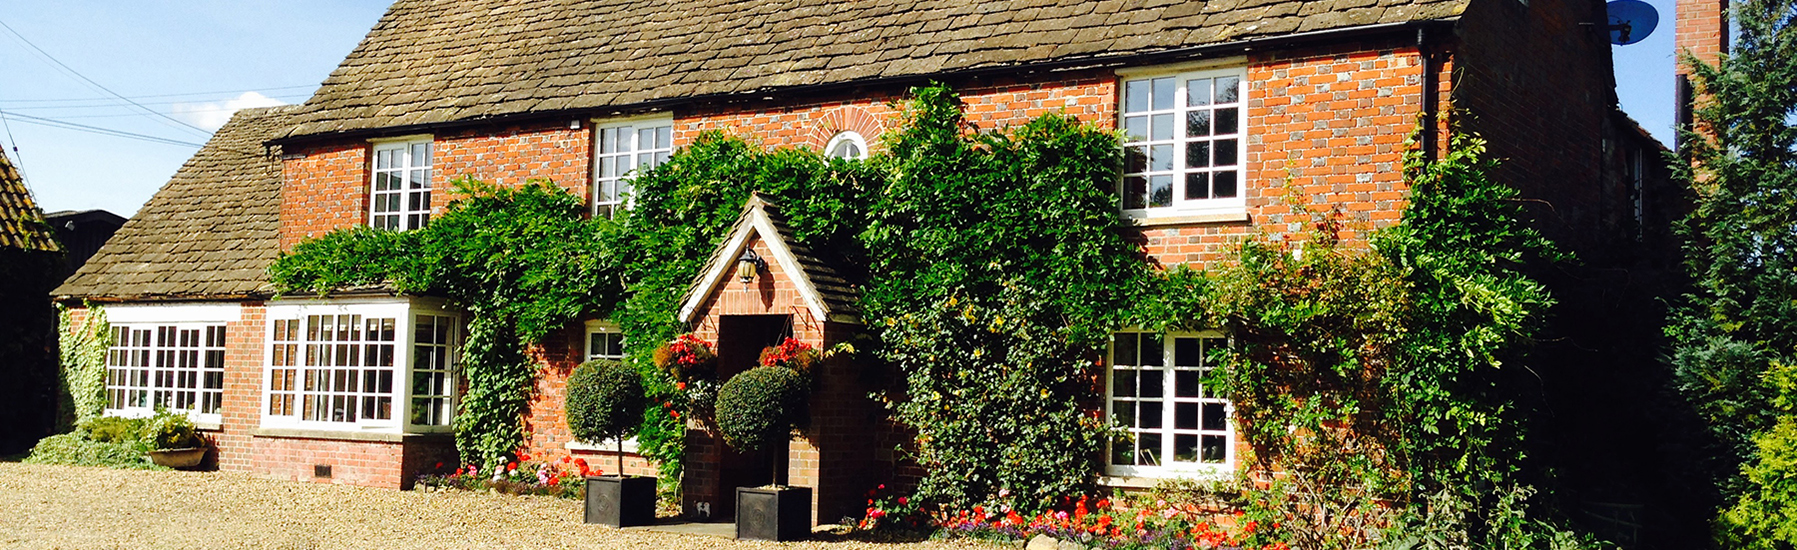 Welcome to Olivemead Farm a 250 acre farm in the heart of the Dauntsey Vale.